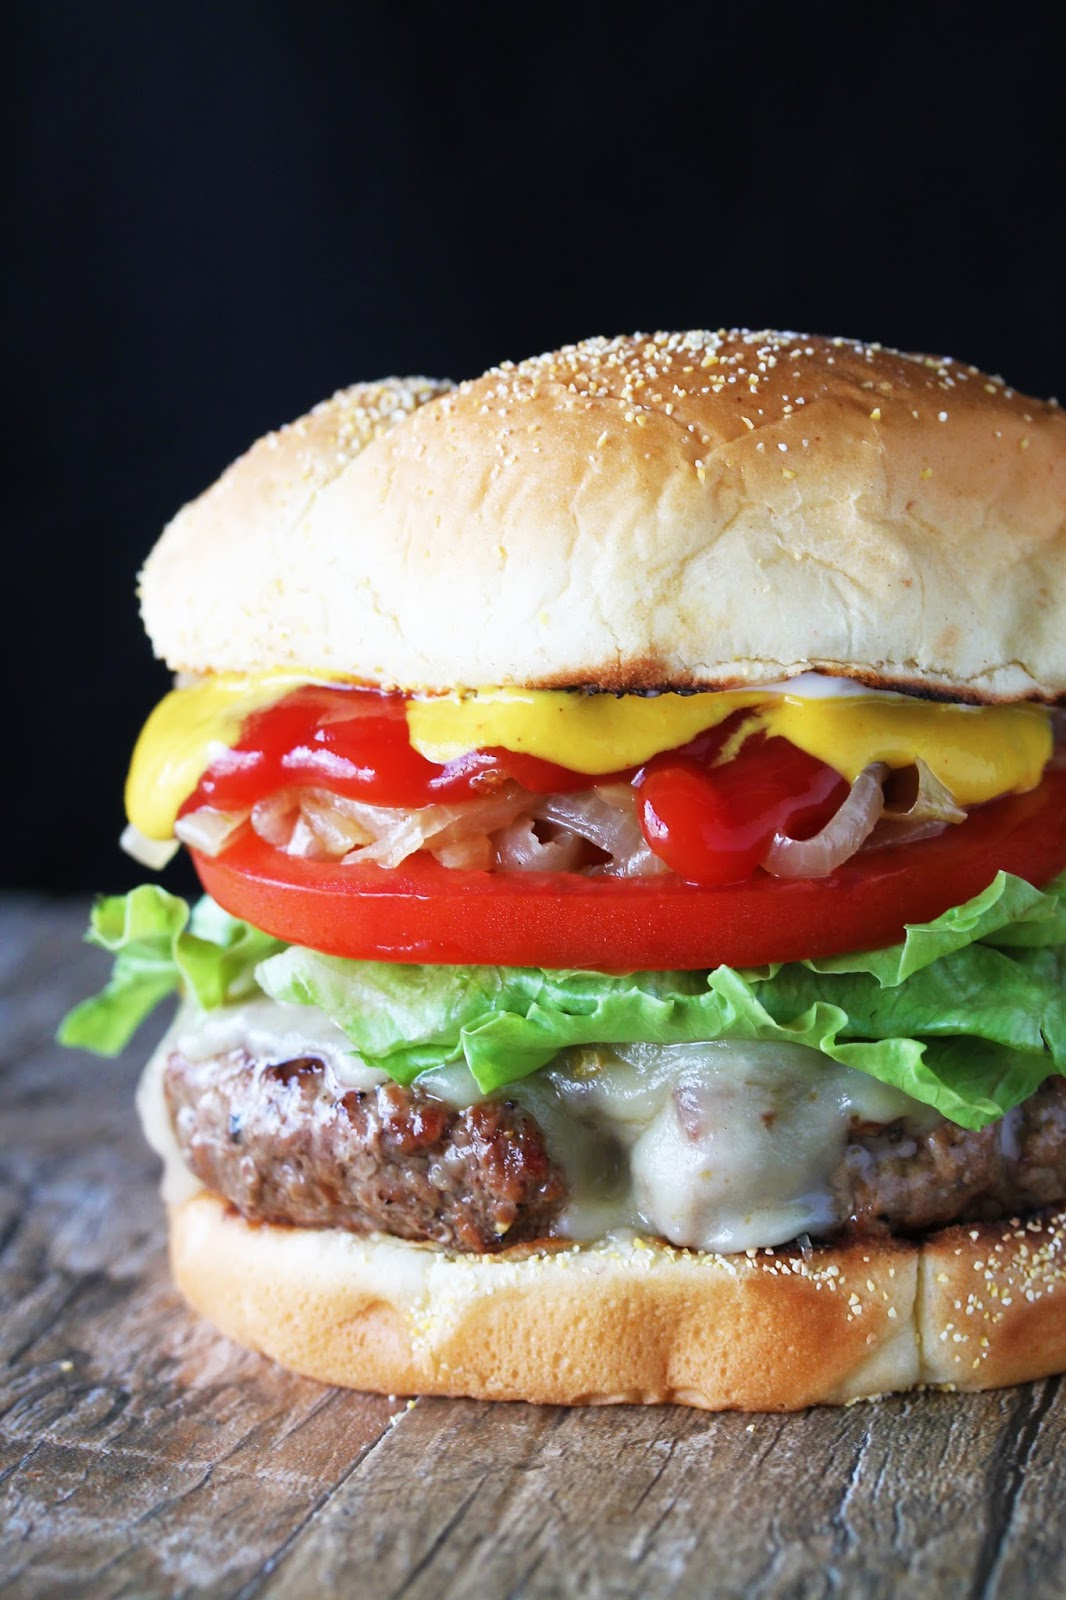 Watch Make the perfect cheeseburger video